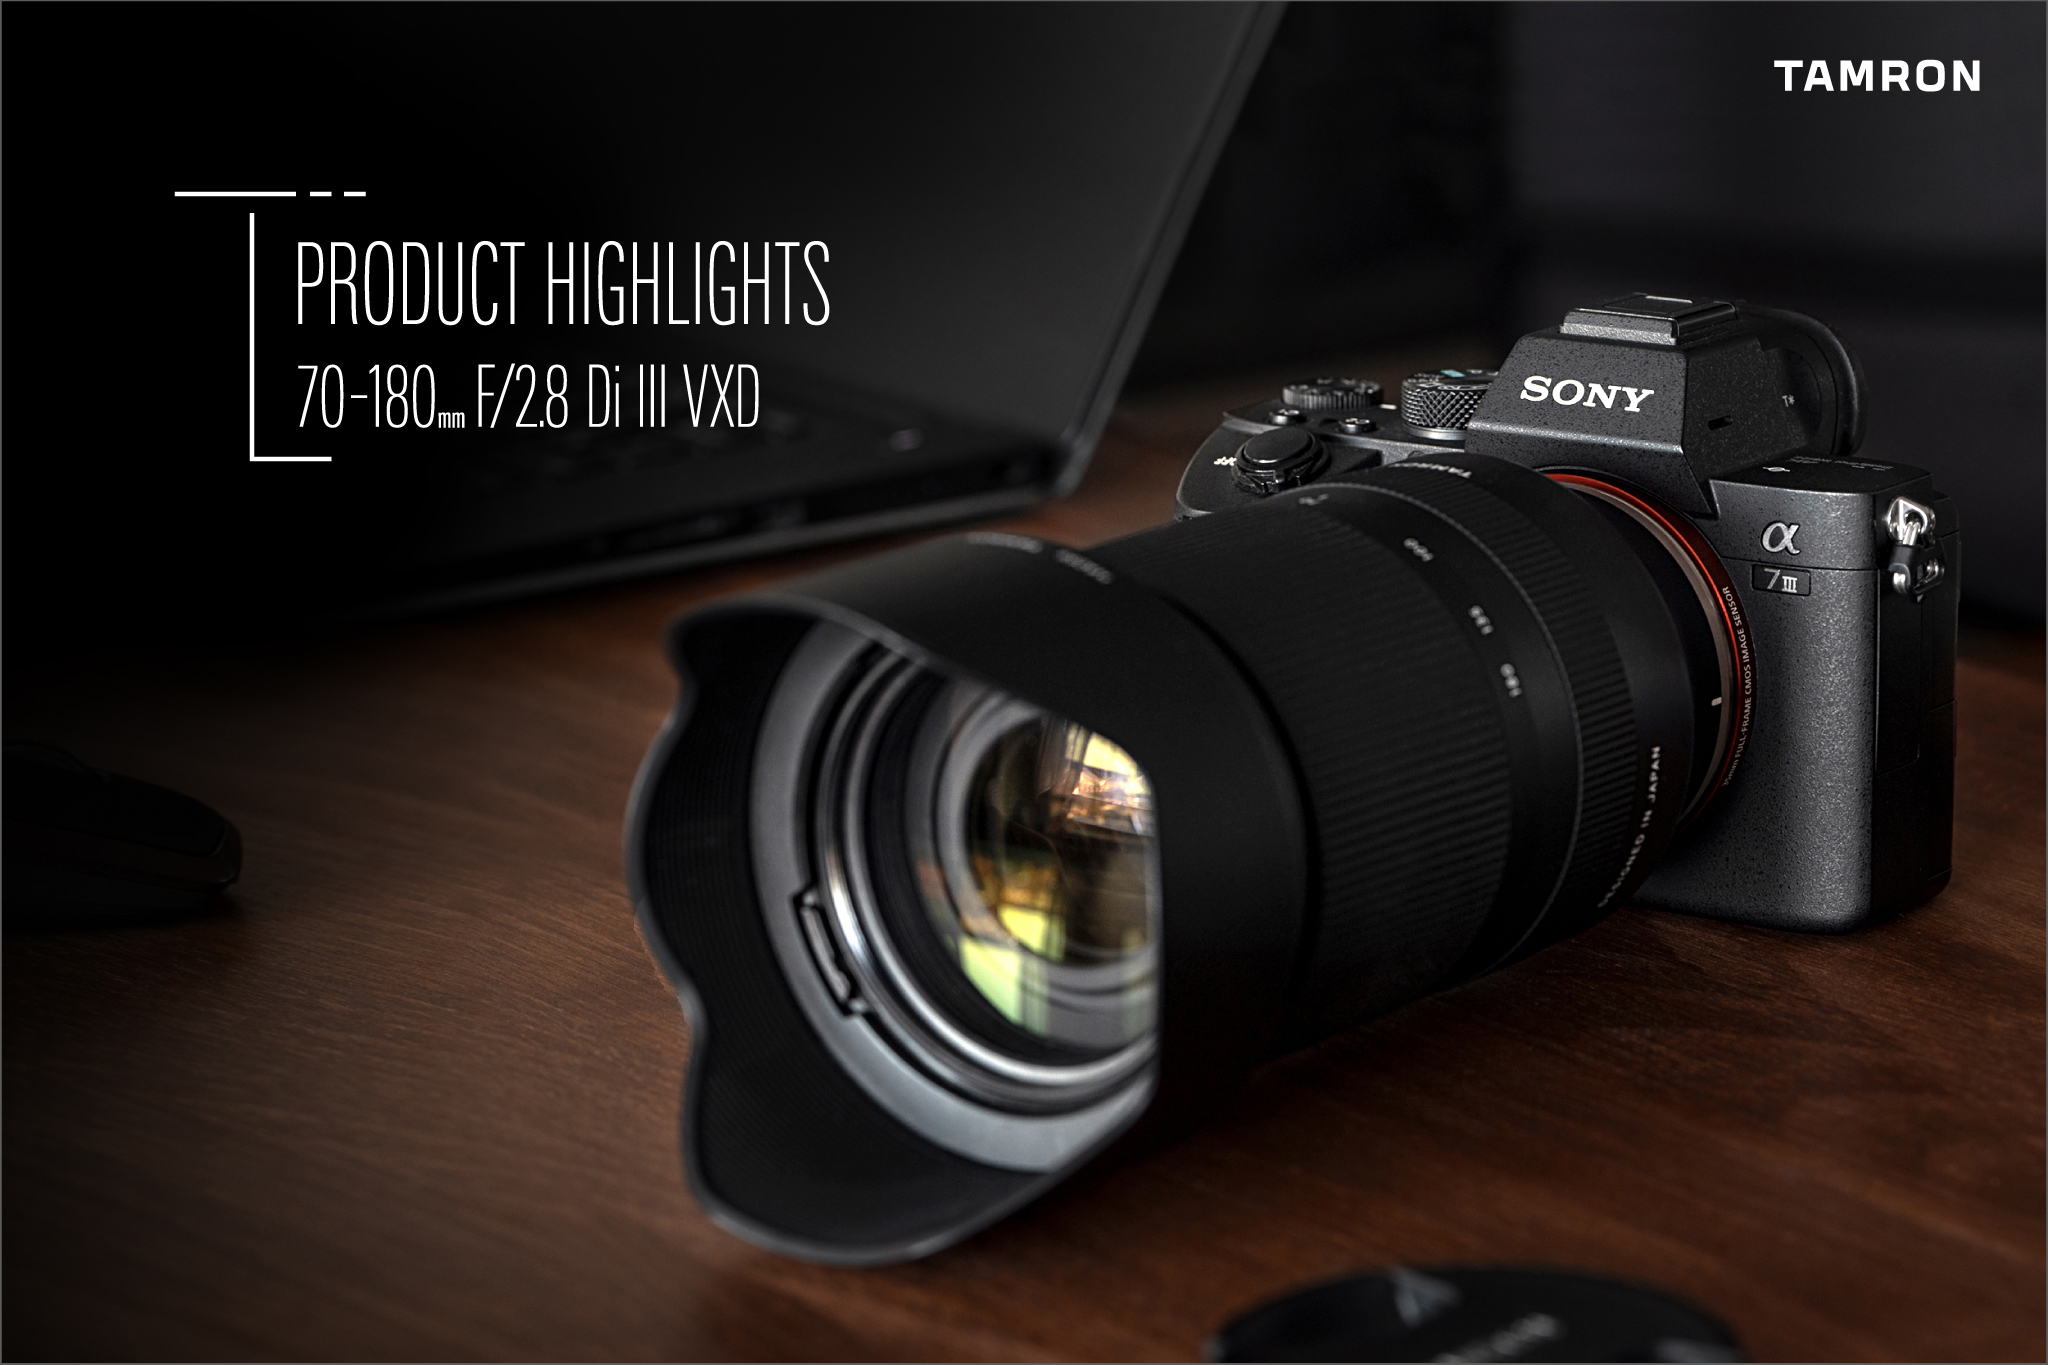 Product Highlight : TAMRON 70-180mm F/2.8 Di III VXD (Model A056)